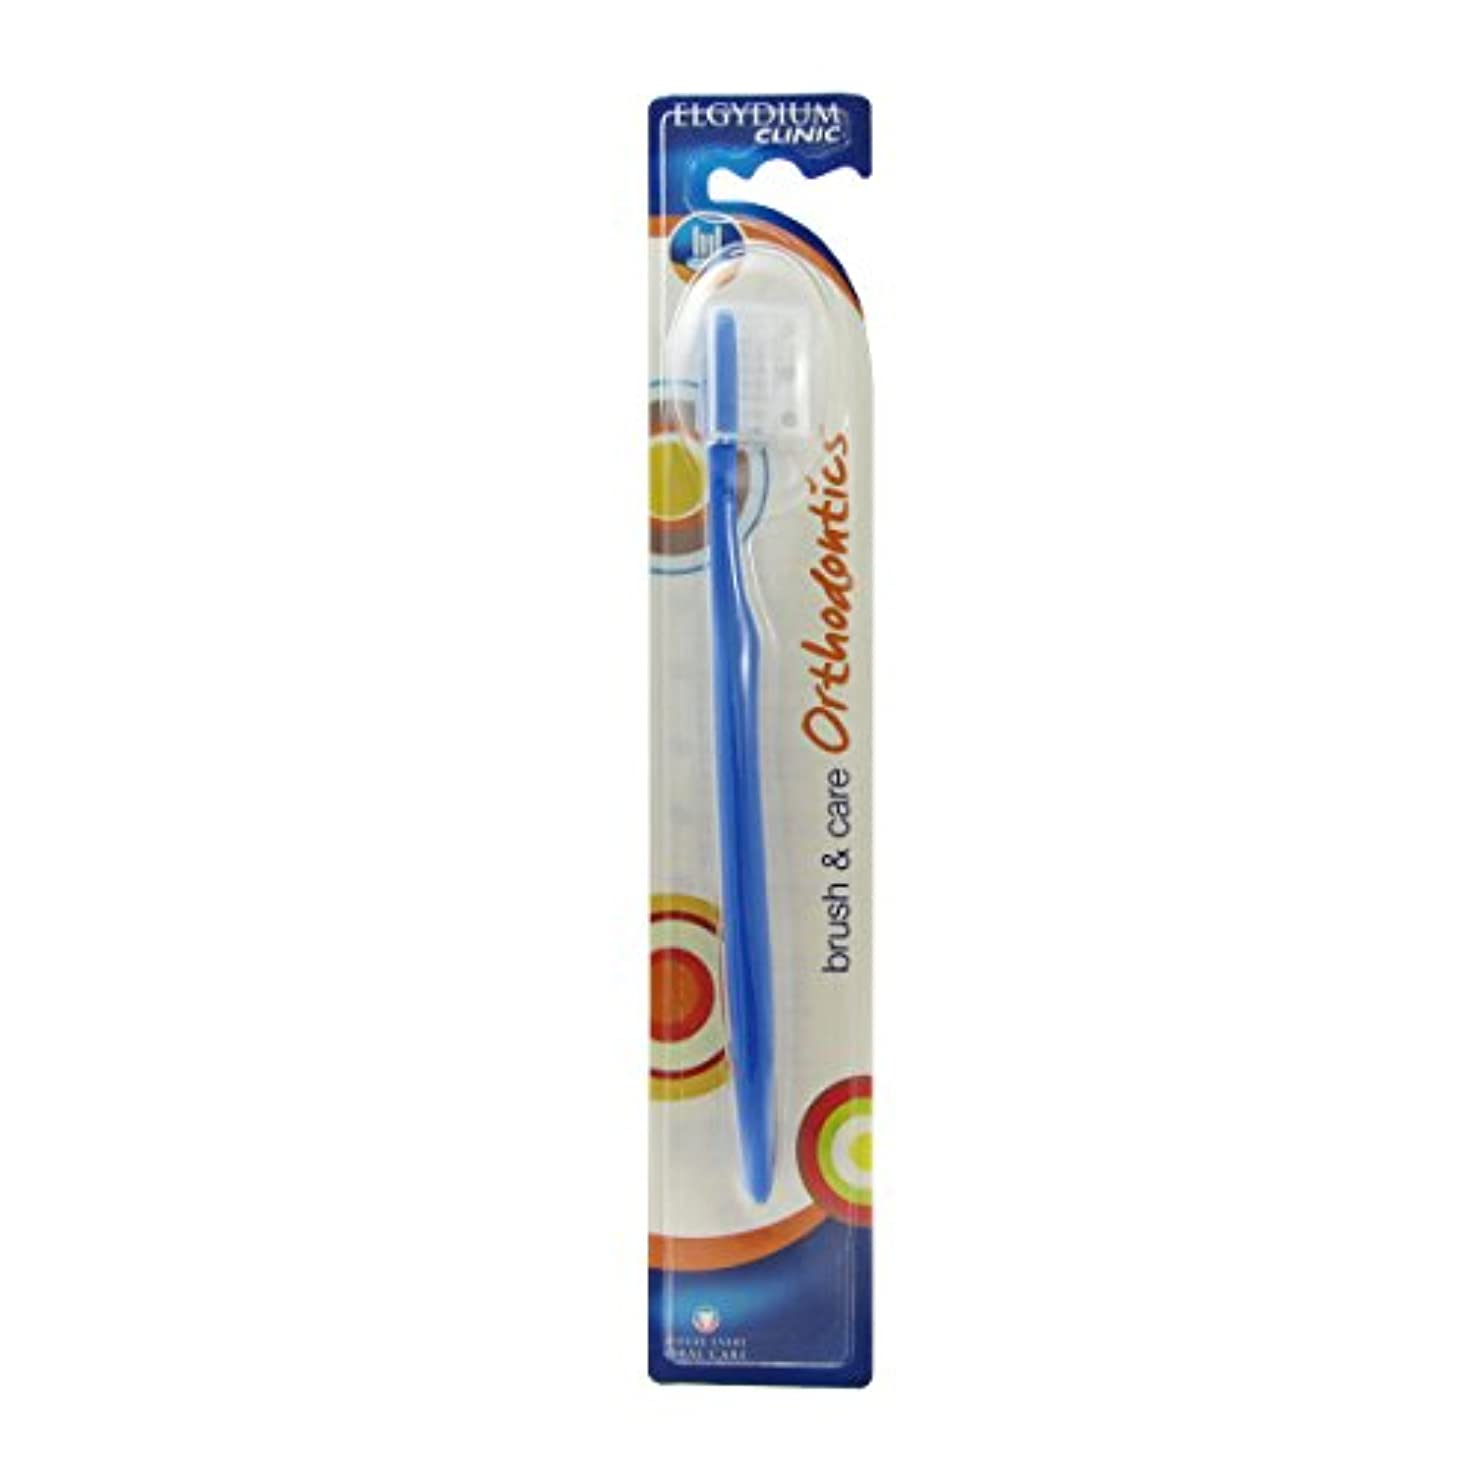 便利失敗ランダムElgydium Clinic Orthodontics Orthodontic Medium Children Toothbrush [並行輸入品]